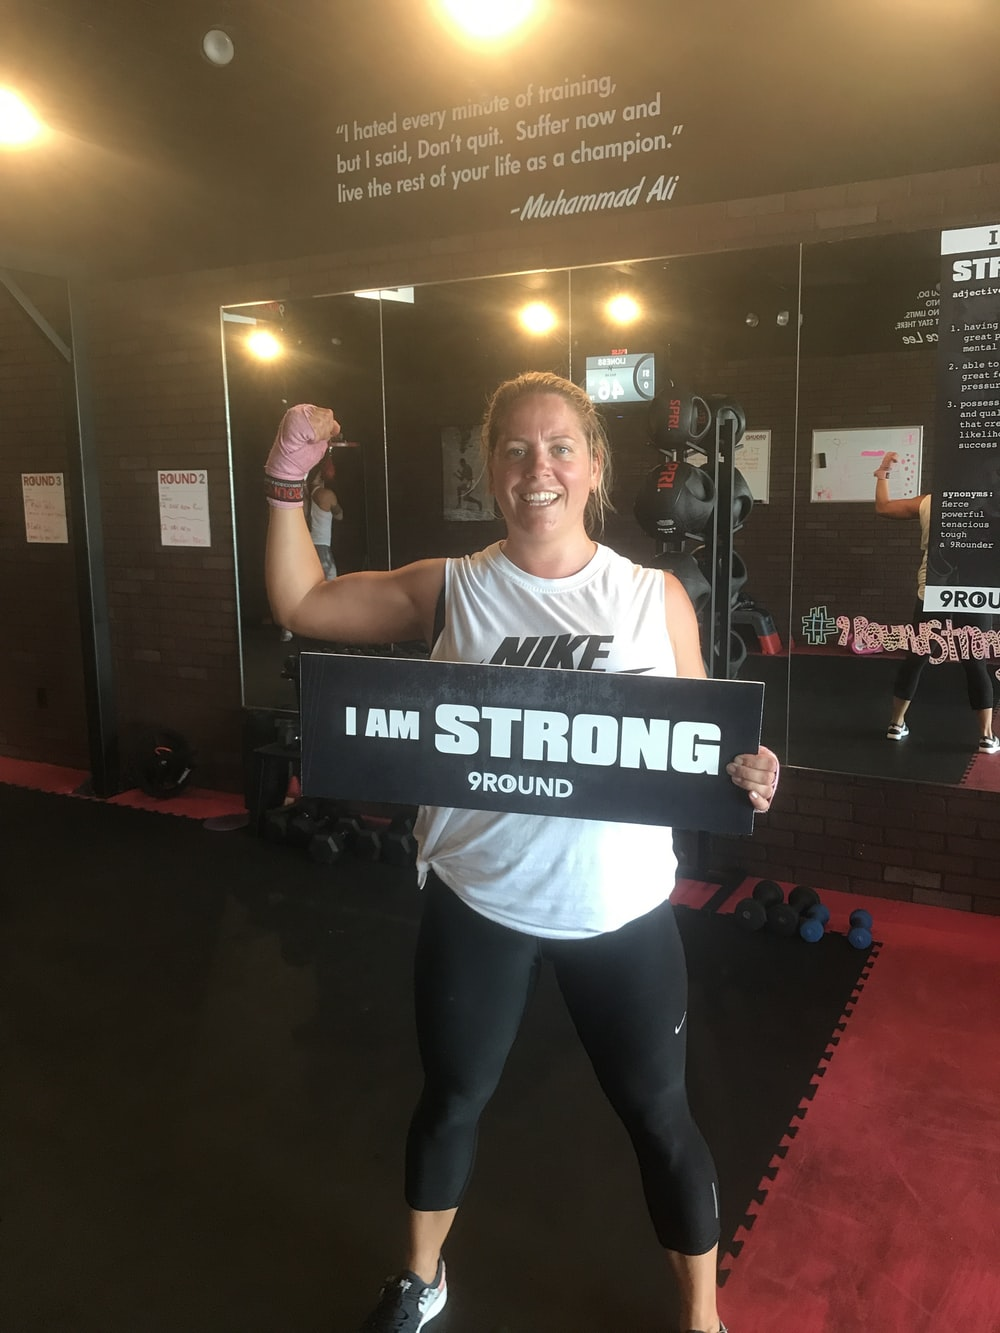 woman standing holding i am strong 9 round signage